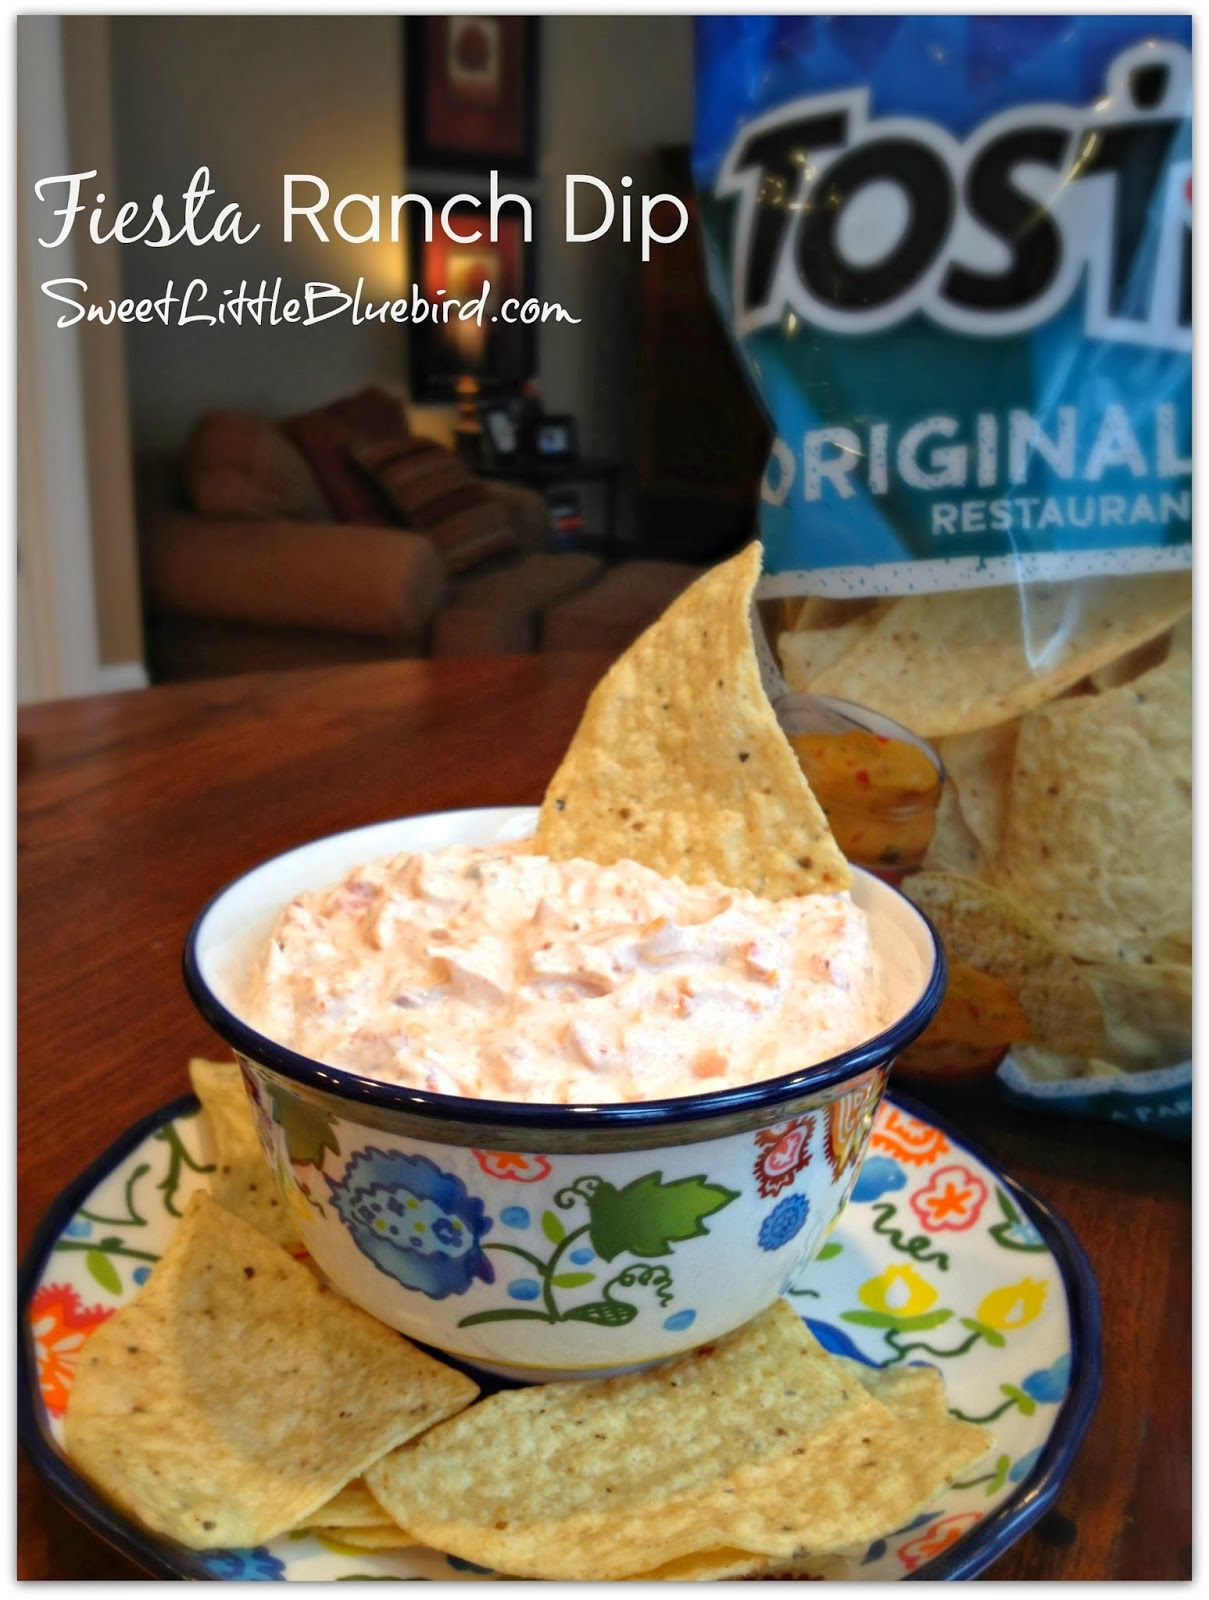 Fiesta Ranch Dip 1 packet Hidden Valley Fiesta Ranch Dip 10 ounce can Rotel Original (drain excess liquid) 16 oz sour cream 1 cup finely shredded cheddar cheese Mix all ingredients in a medium size bowl. Chill in fridge for 1 hour. Enjoy!!!